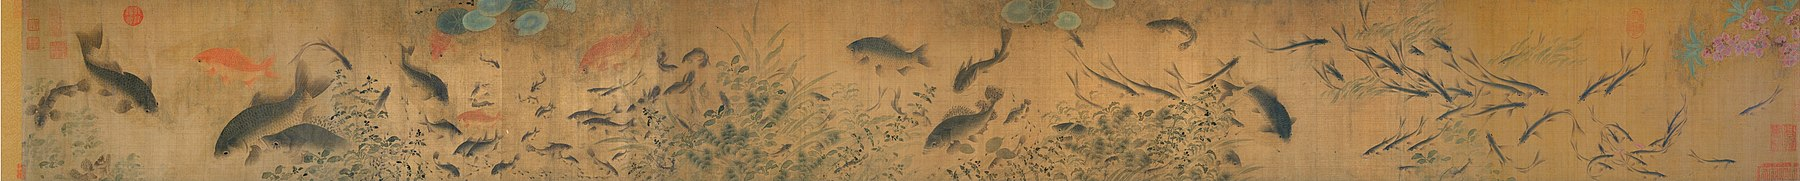 A hand scroll showing carp and other types of fish swimming